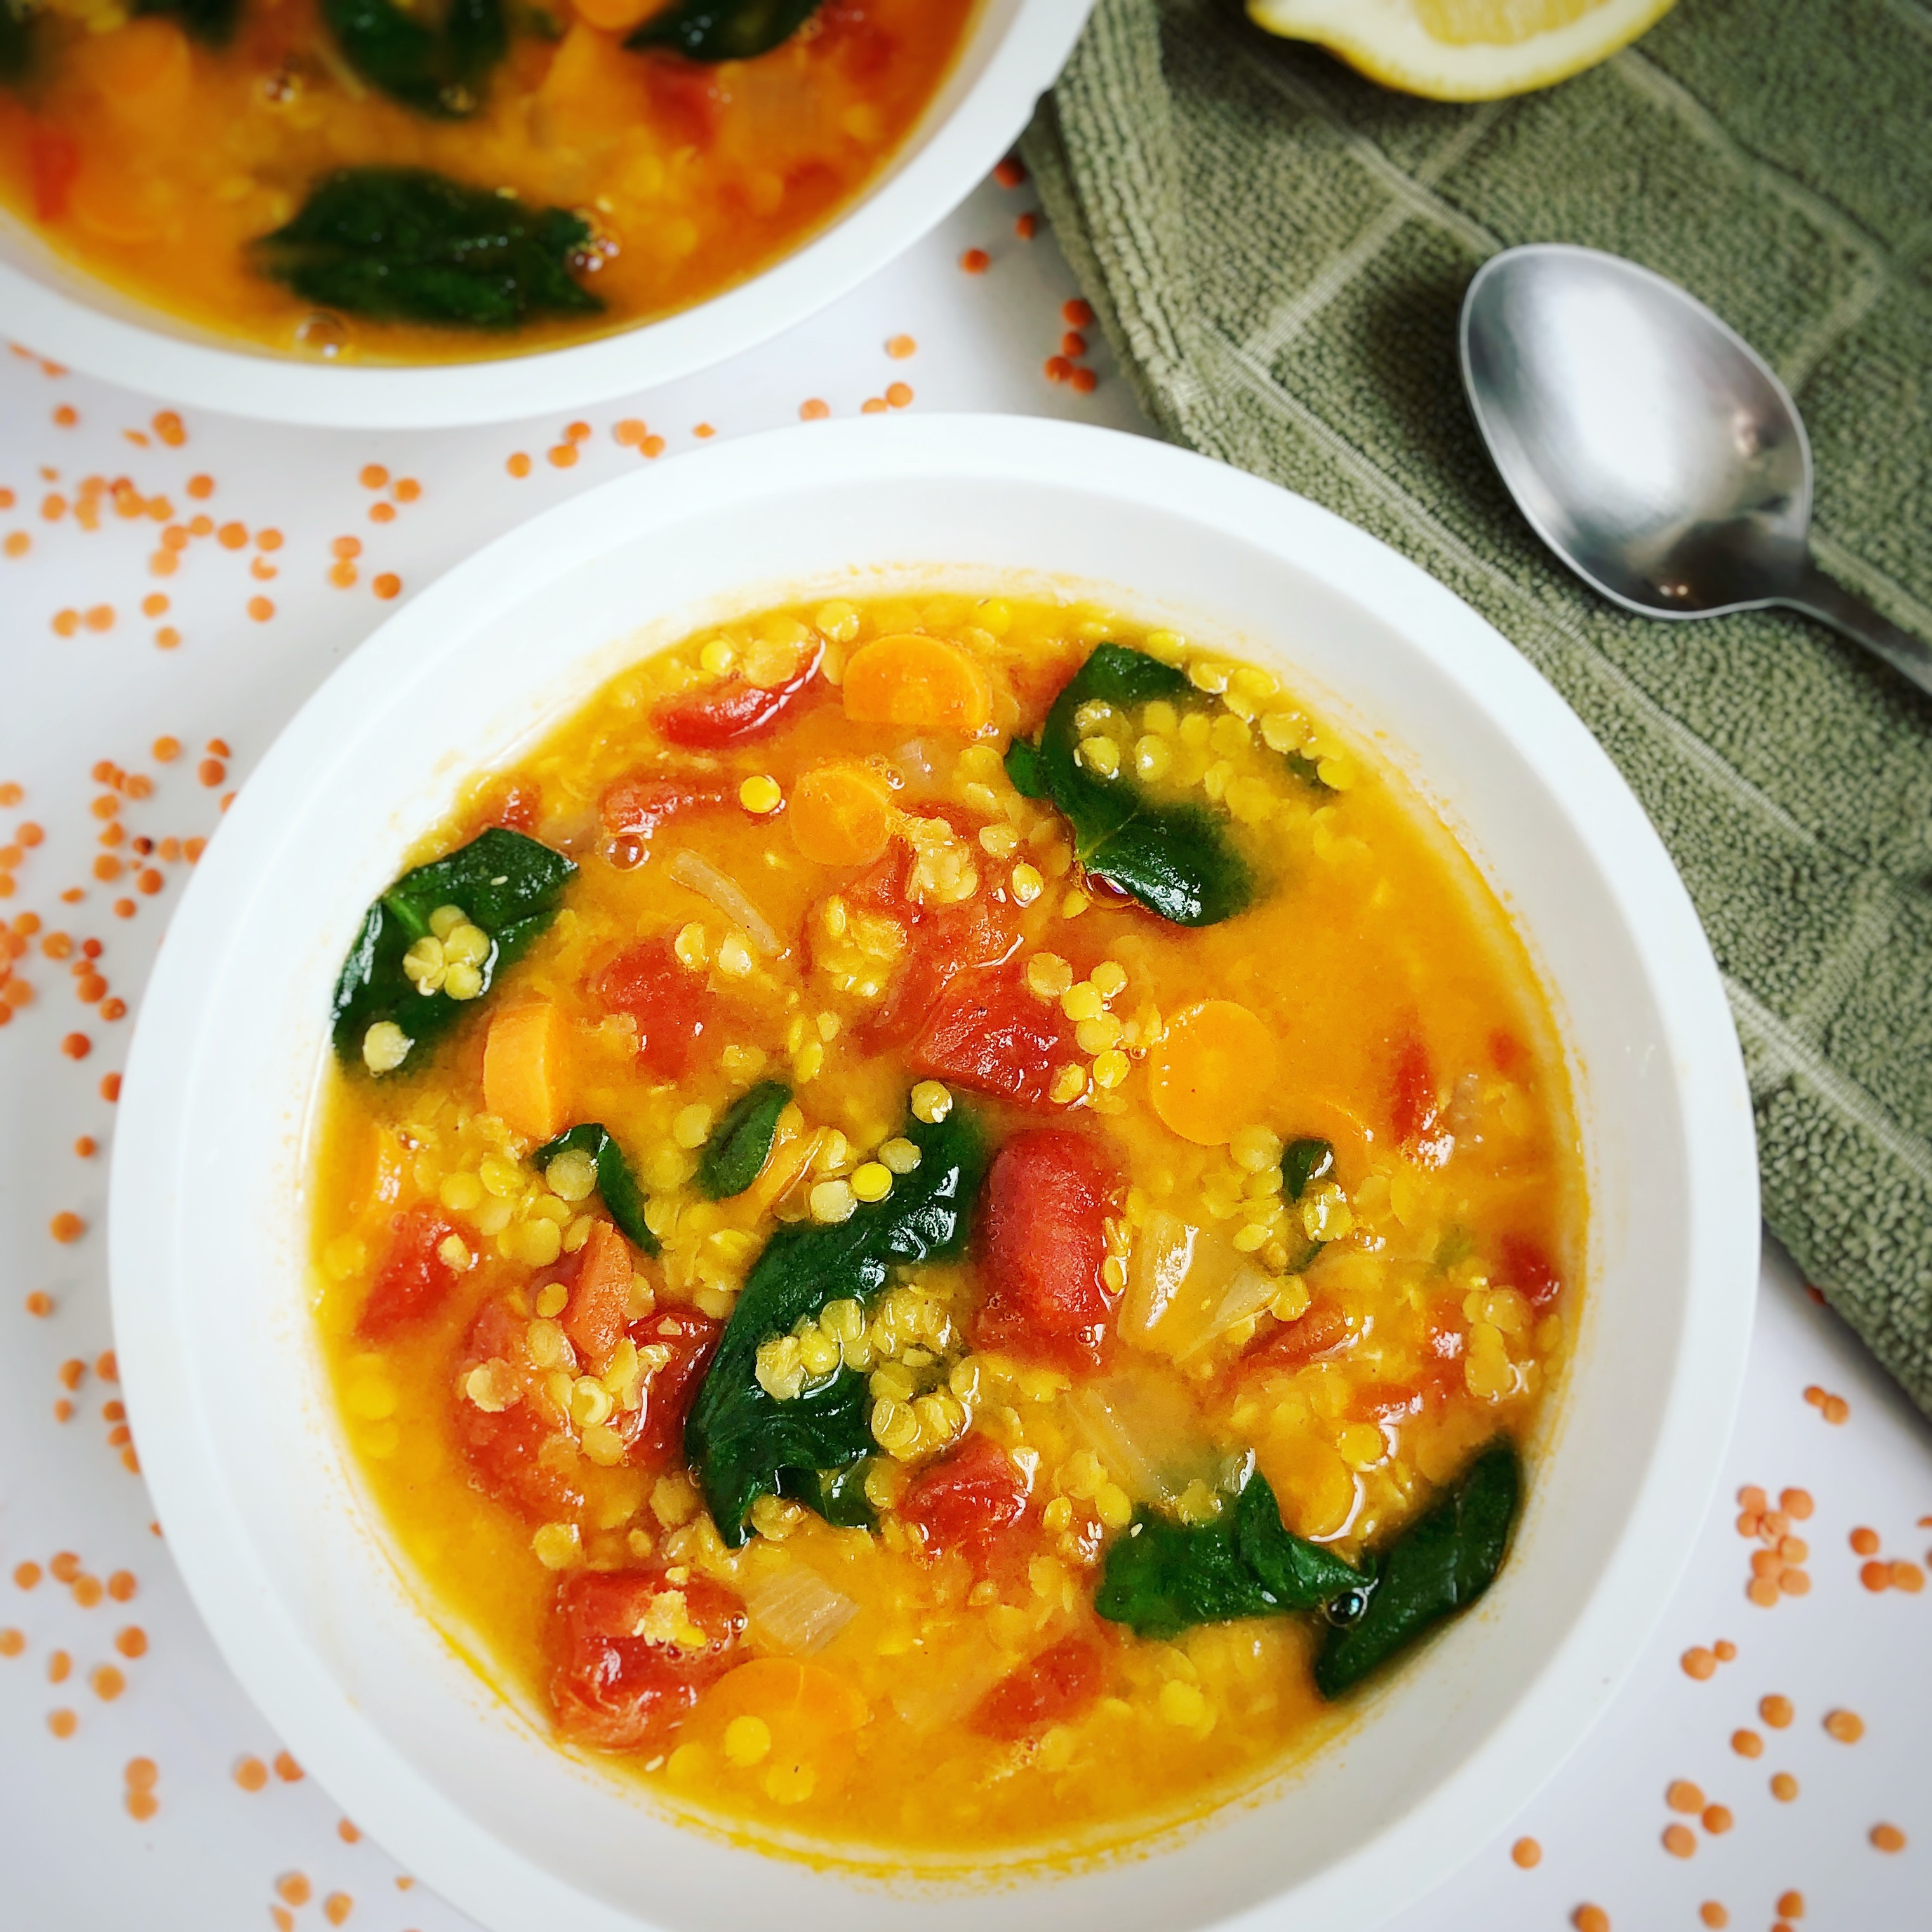 red lentil soup with spinach in 2 bowls